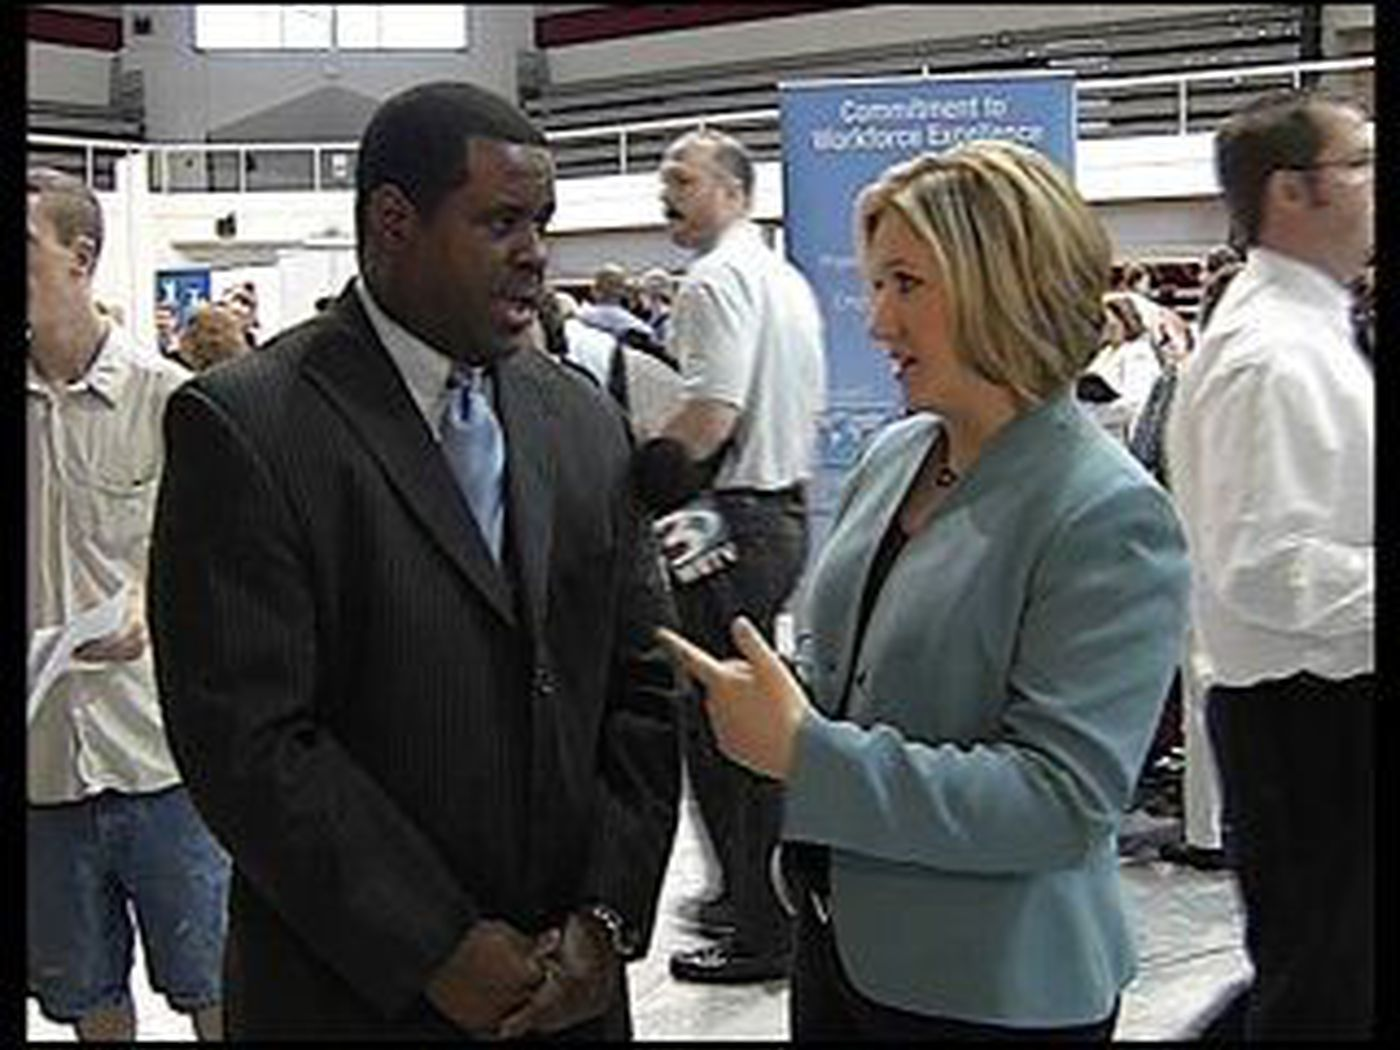 Job seekers converge on Hickory